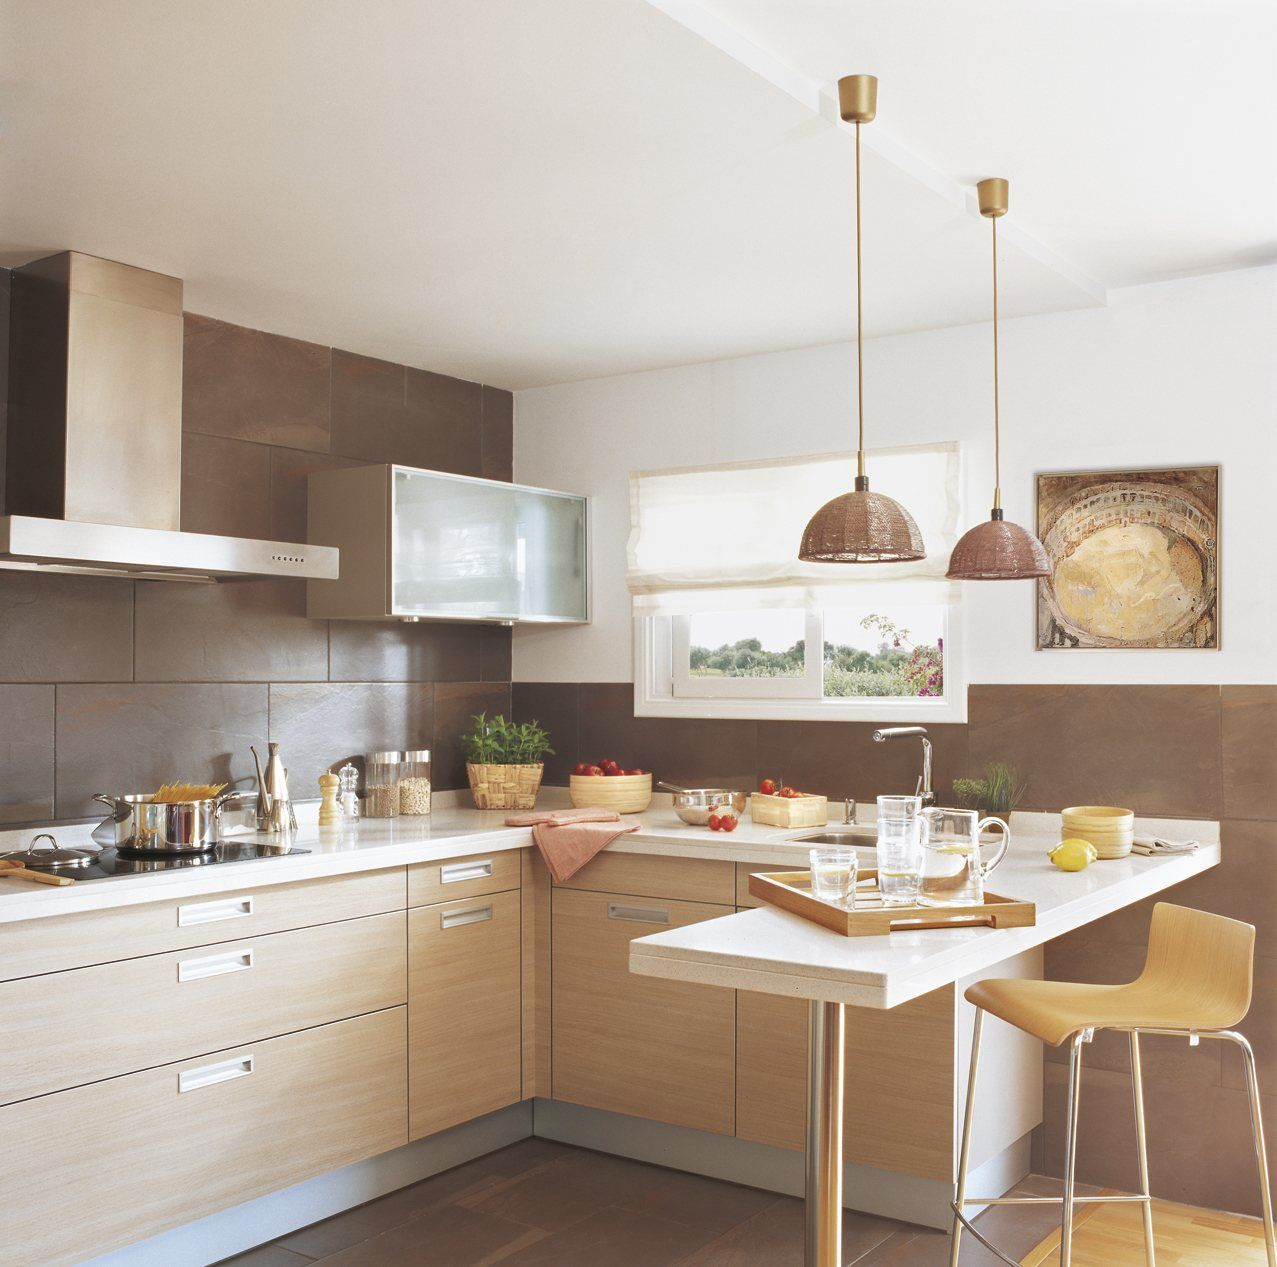 15 cocinas peque as y muy bonitas kitchens ideas para for Cocinas bonitas